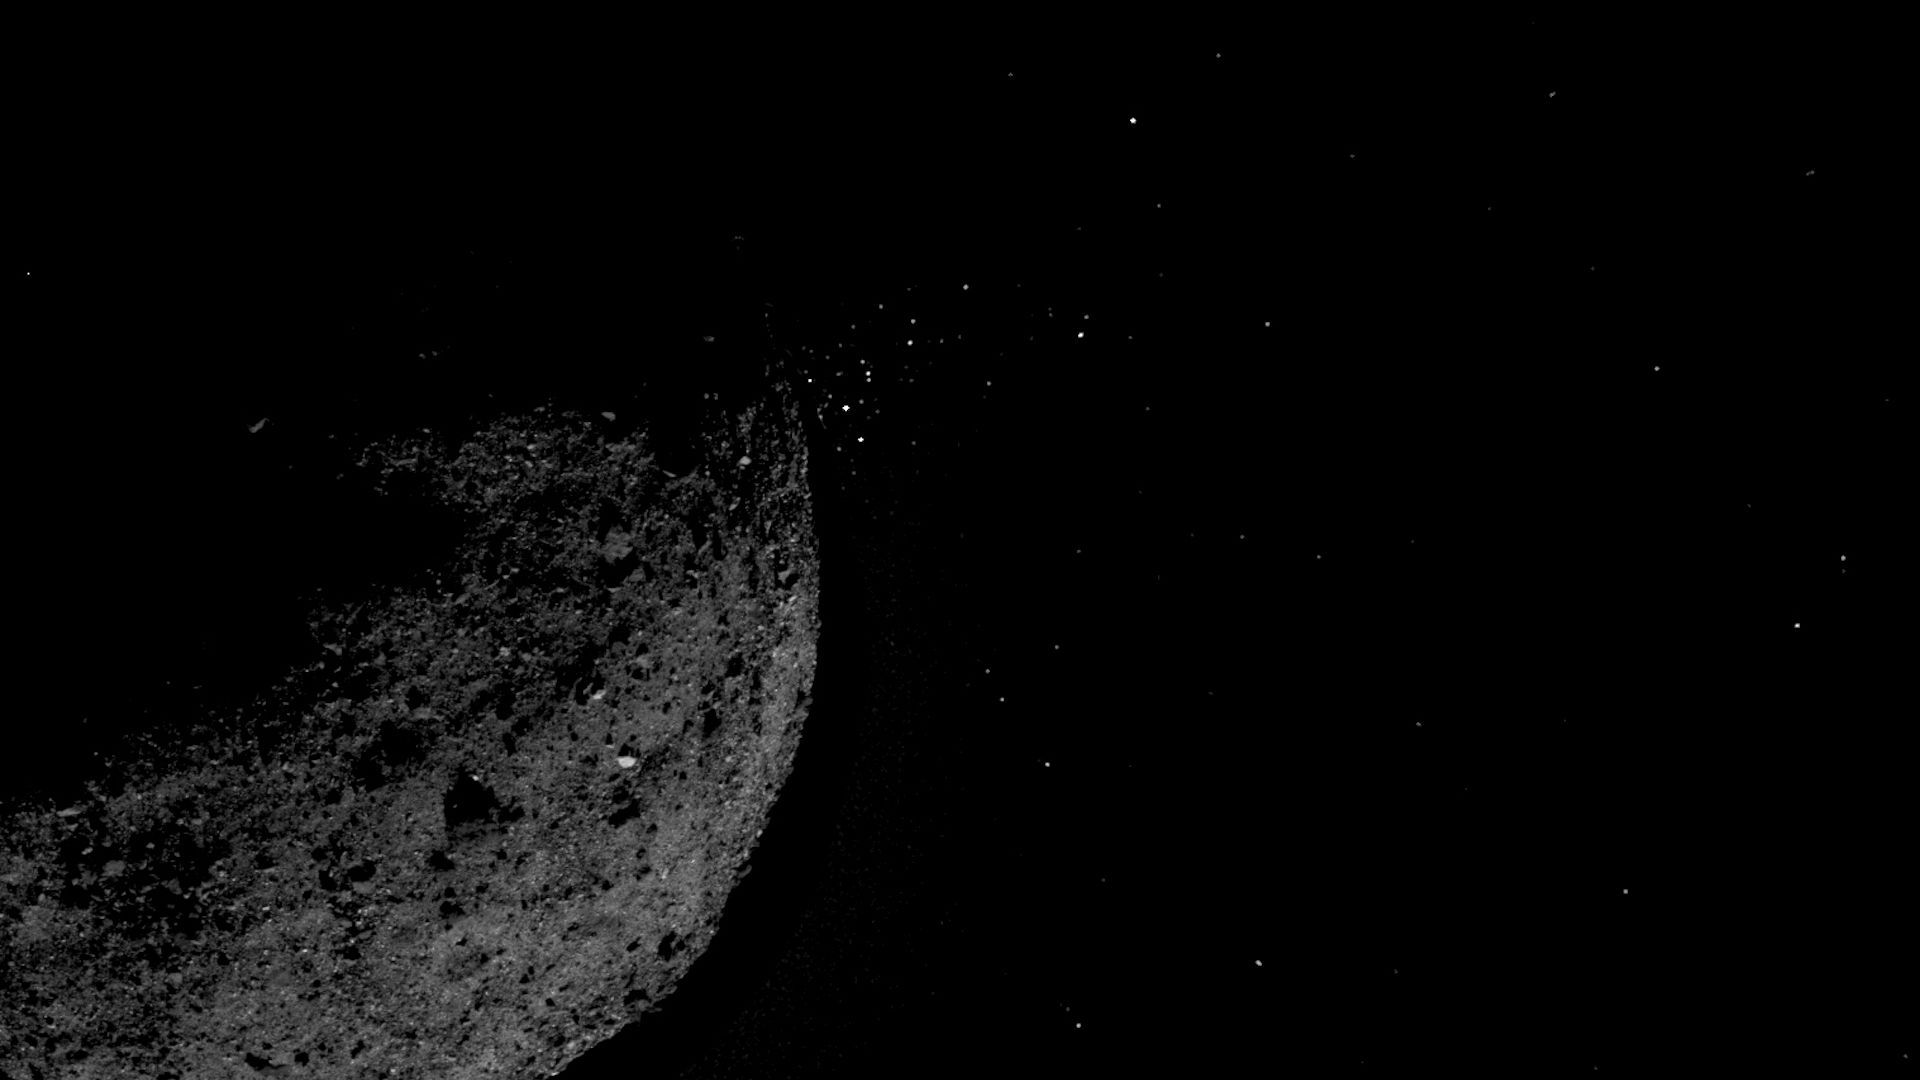 NASA finds near-Earth asteroid Bennu is ejecting rocky material into space